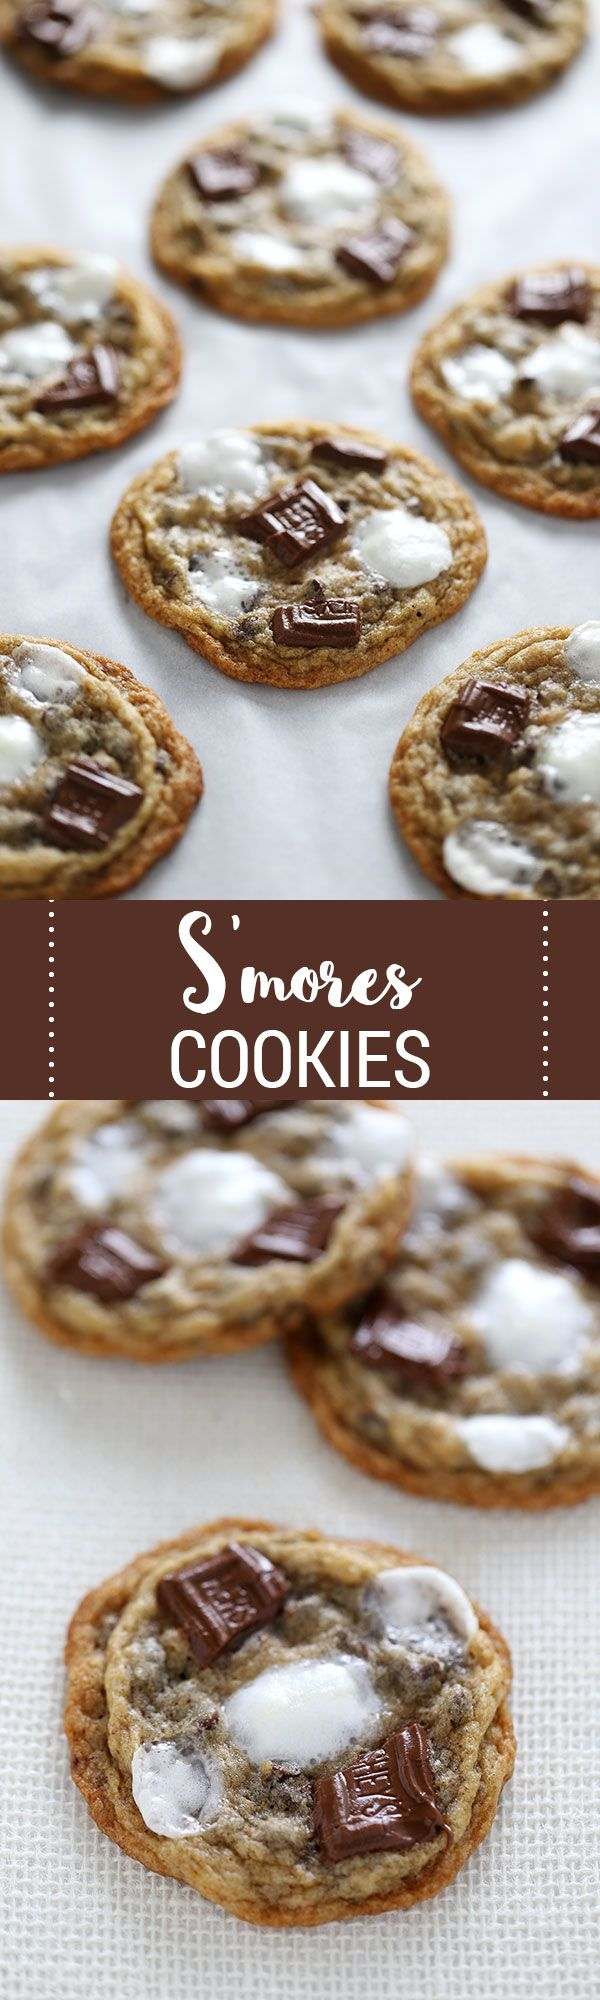 You're going to LOVE these adorable S'mores Cookies loaded with graham cracker crumbs, mini marshmallows, and gooey bits of Hershey's chocolate.